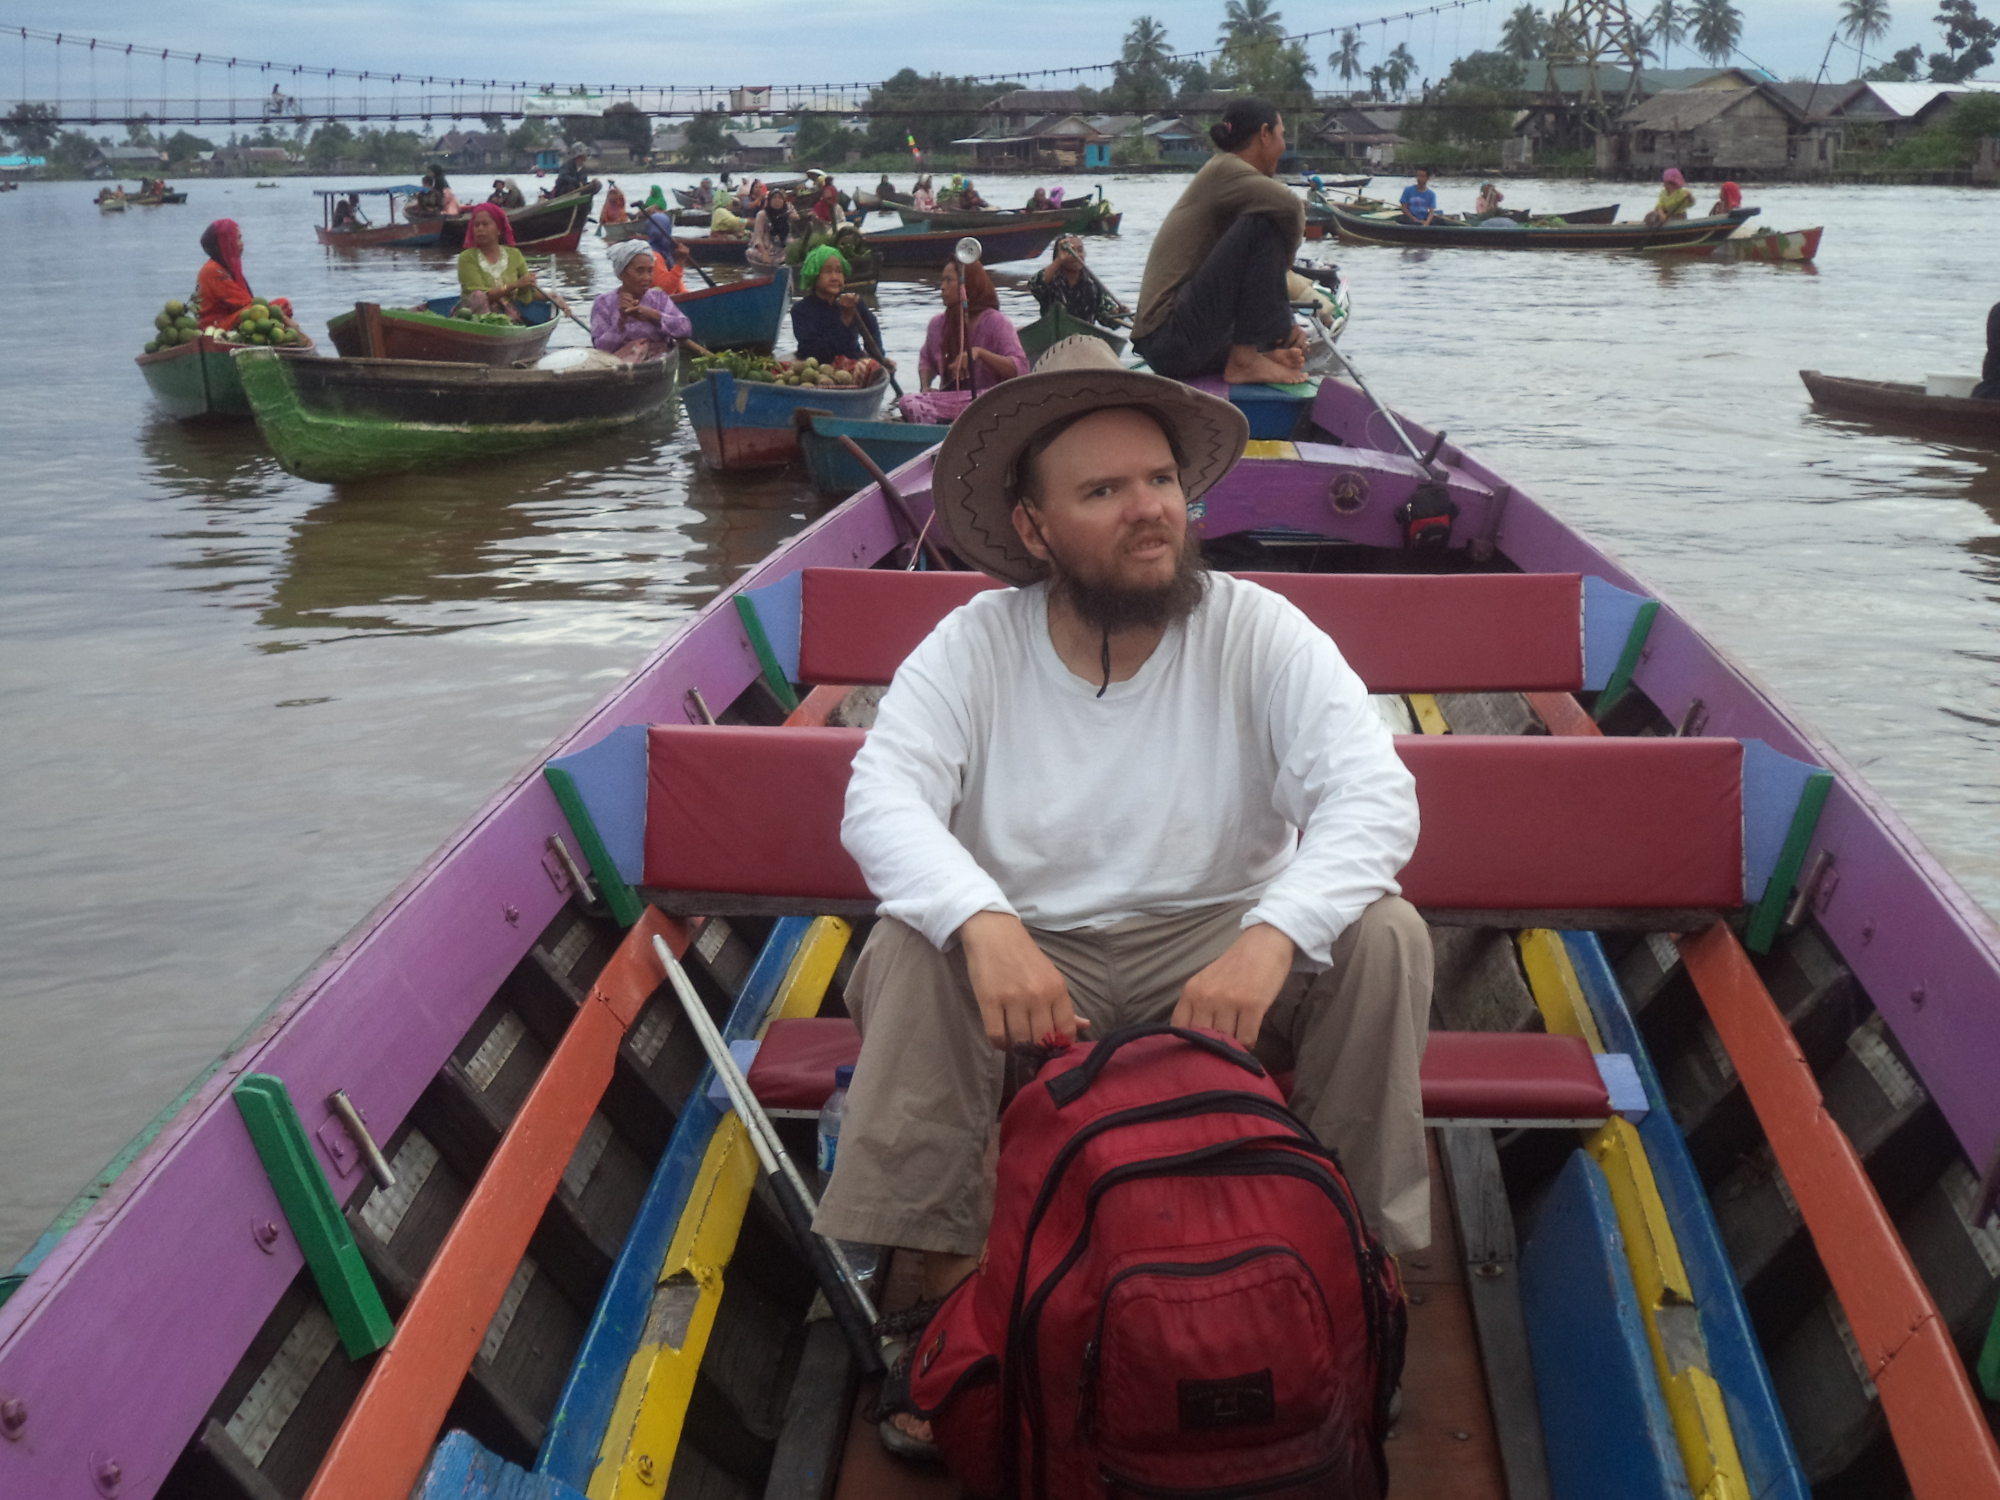 Tony at the floating market in Banjarmasin in South Kalimantan, Indonesia.